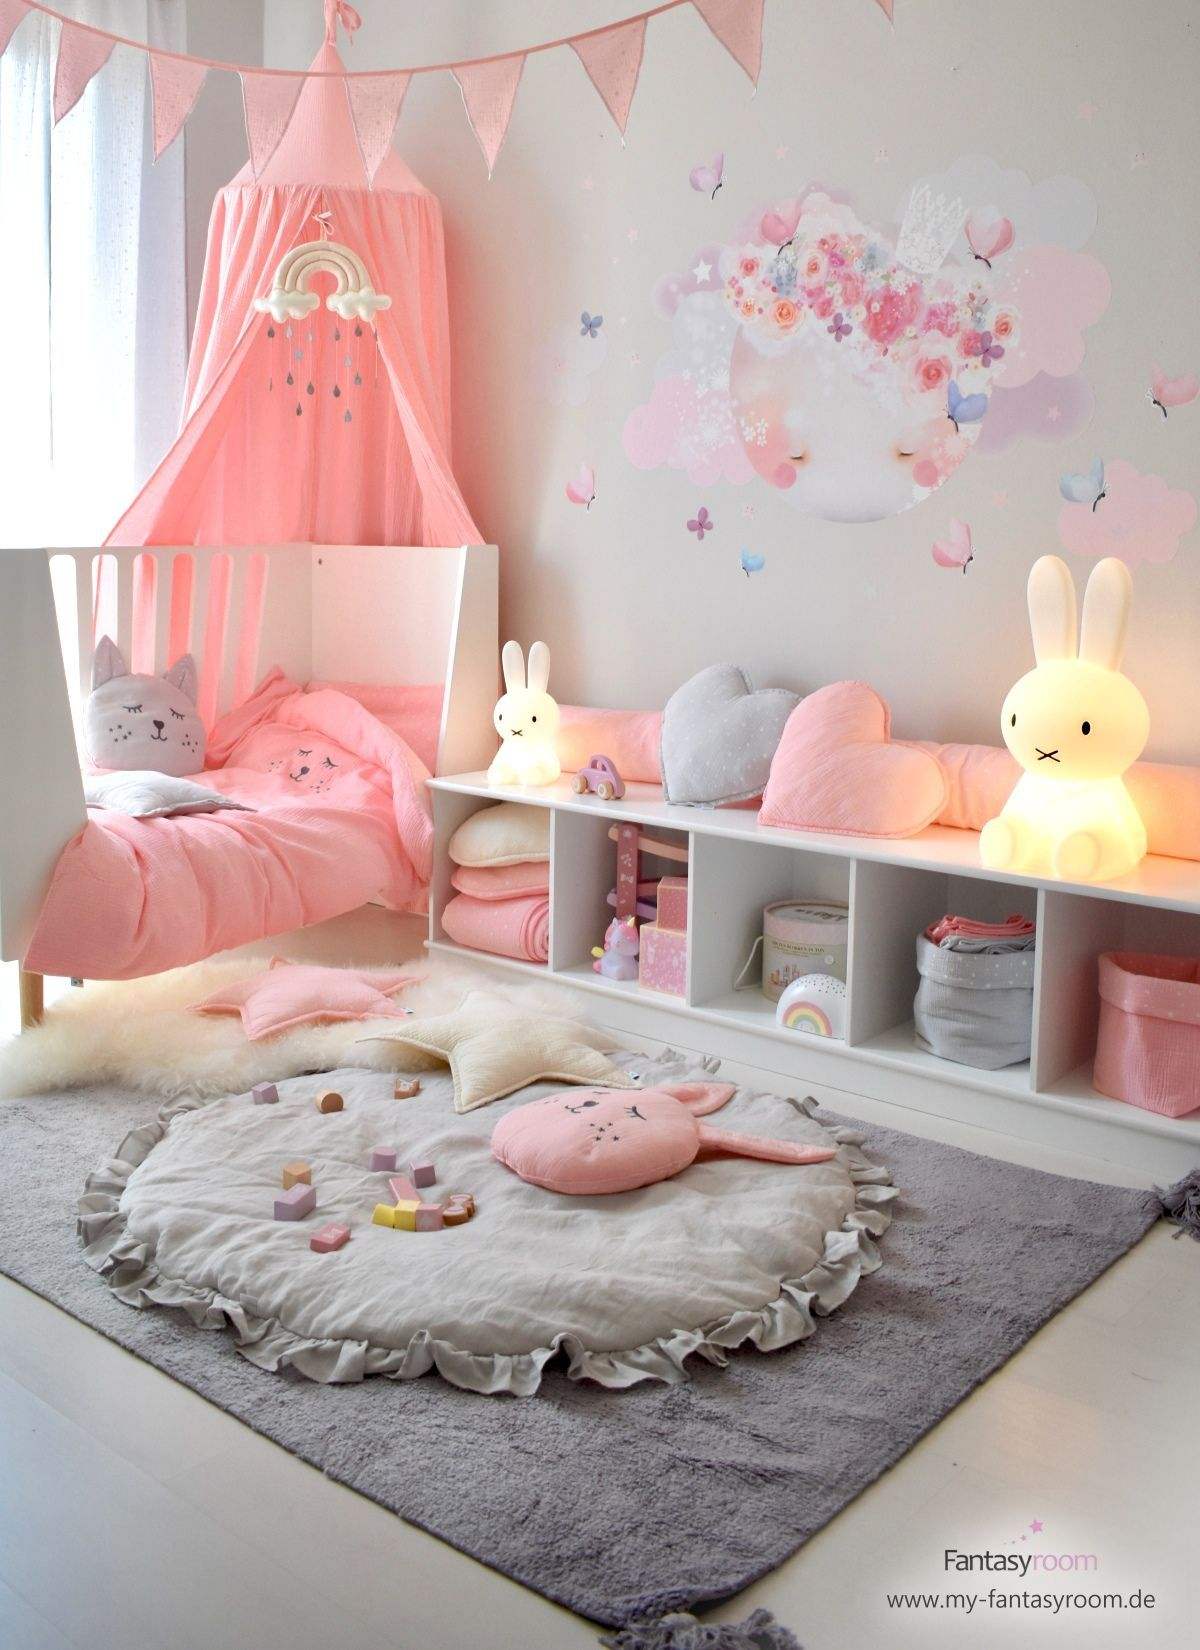 Romantic Pink Girl S Room With Moon Wall Decal Decal Girls Moon Pink Romantic Room Wall In 2021 Pink Girl Room Baby Room Decor Kids Room Design